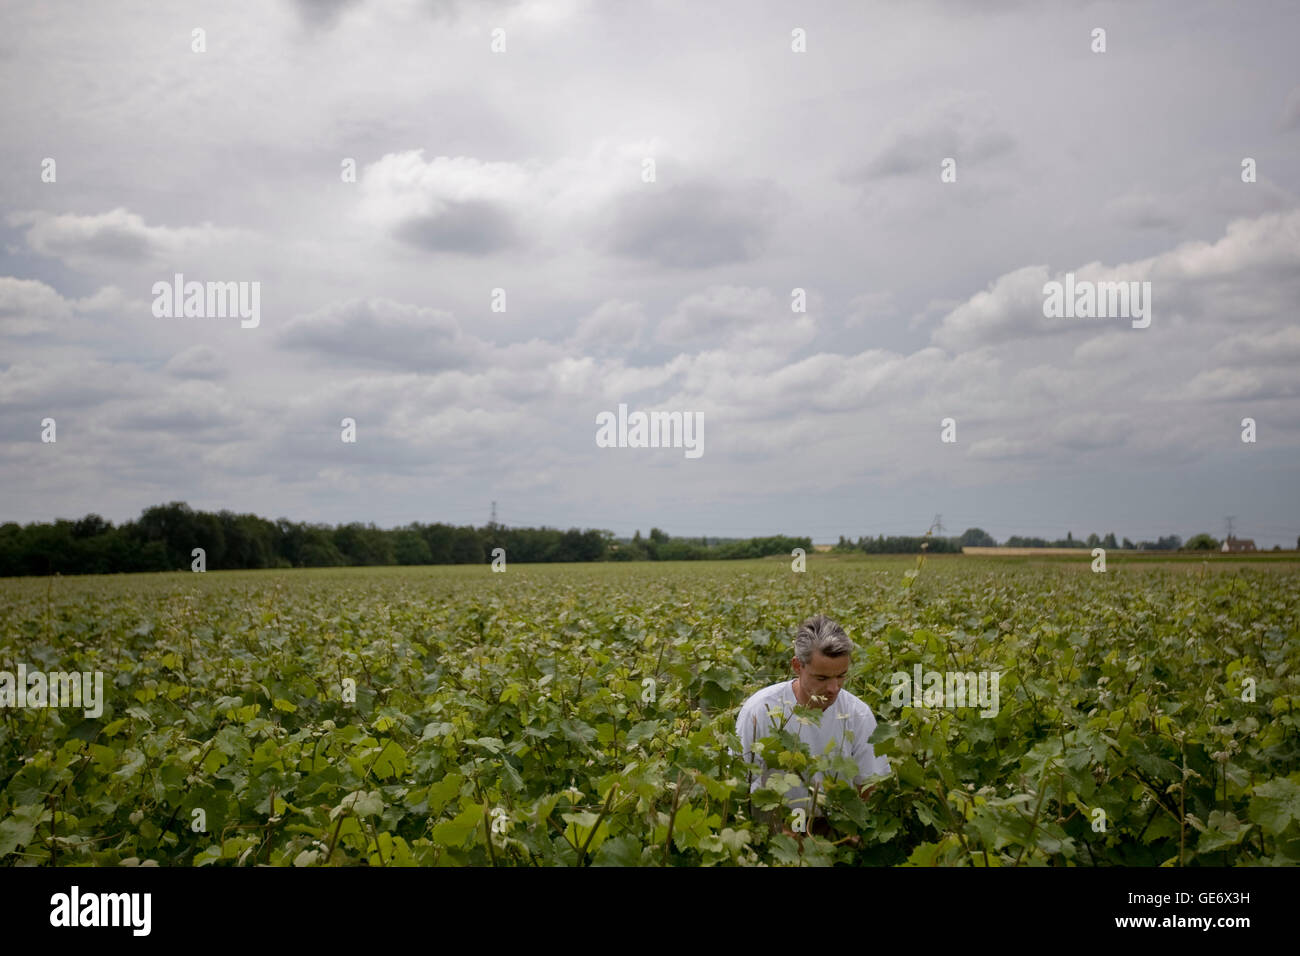 Gregory Royer works in his vineyards outside Vouvray, France, 26 June 2008. - Stock Image